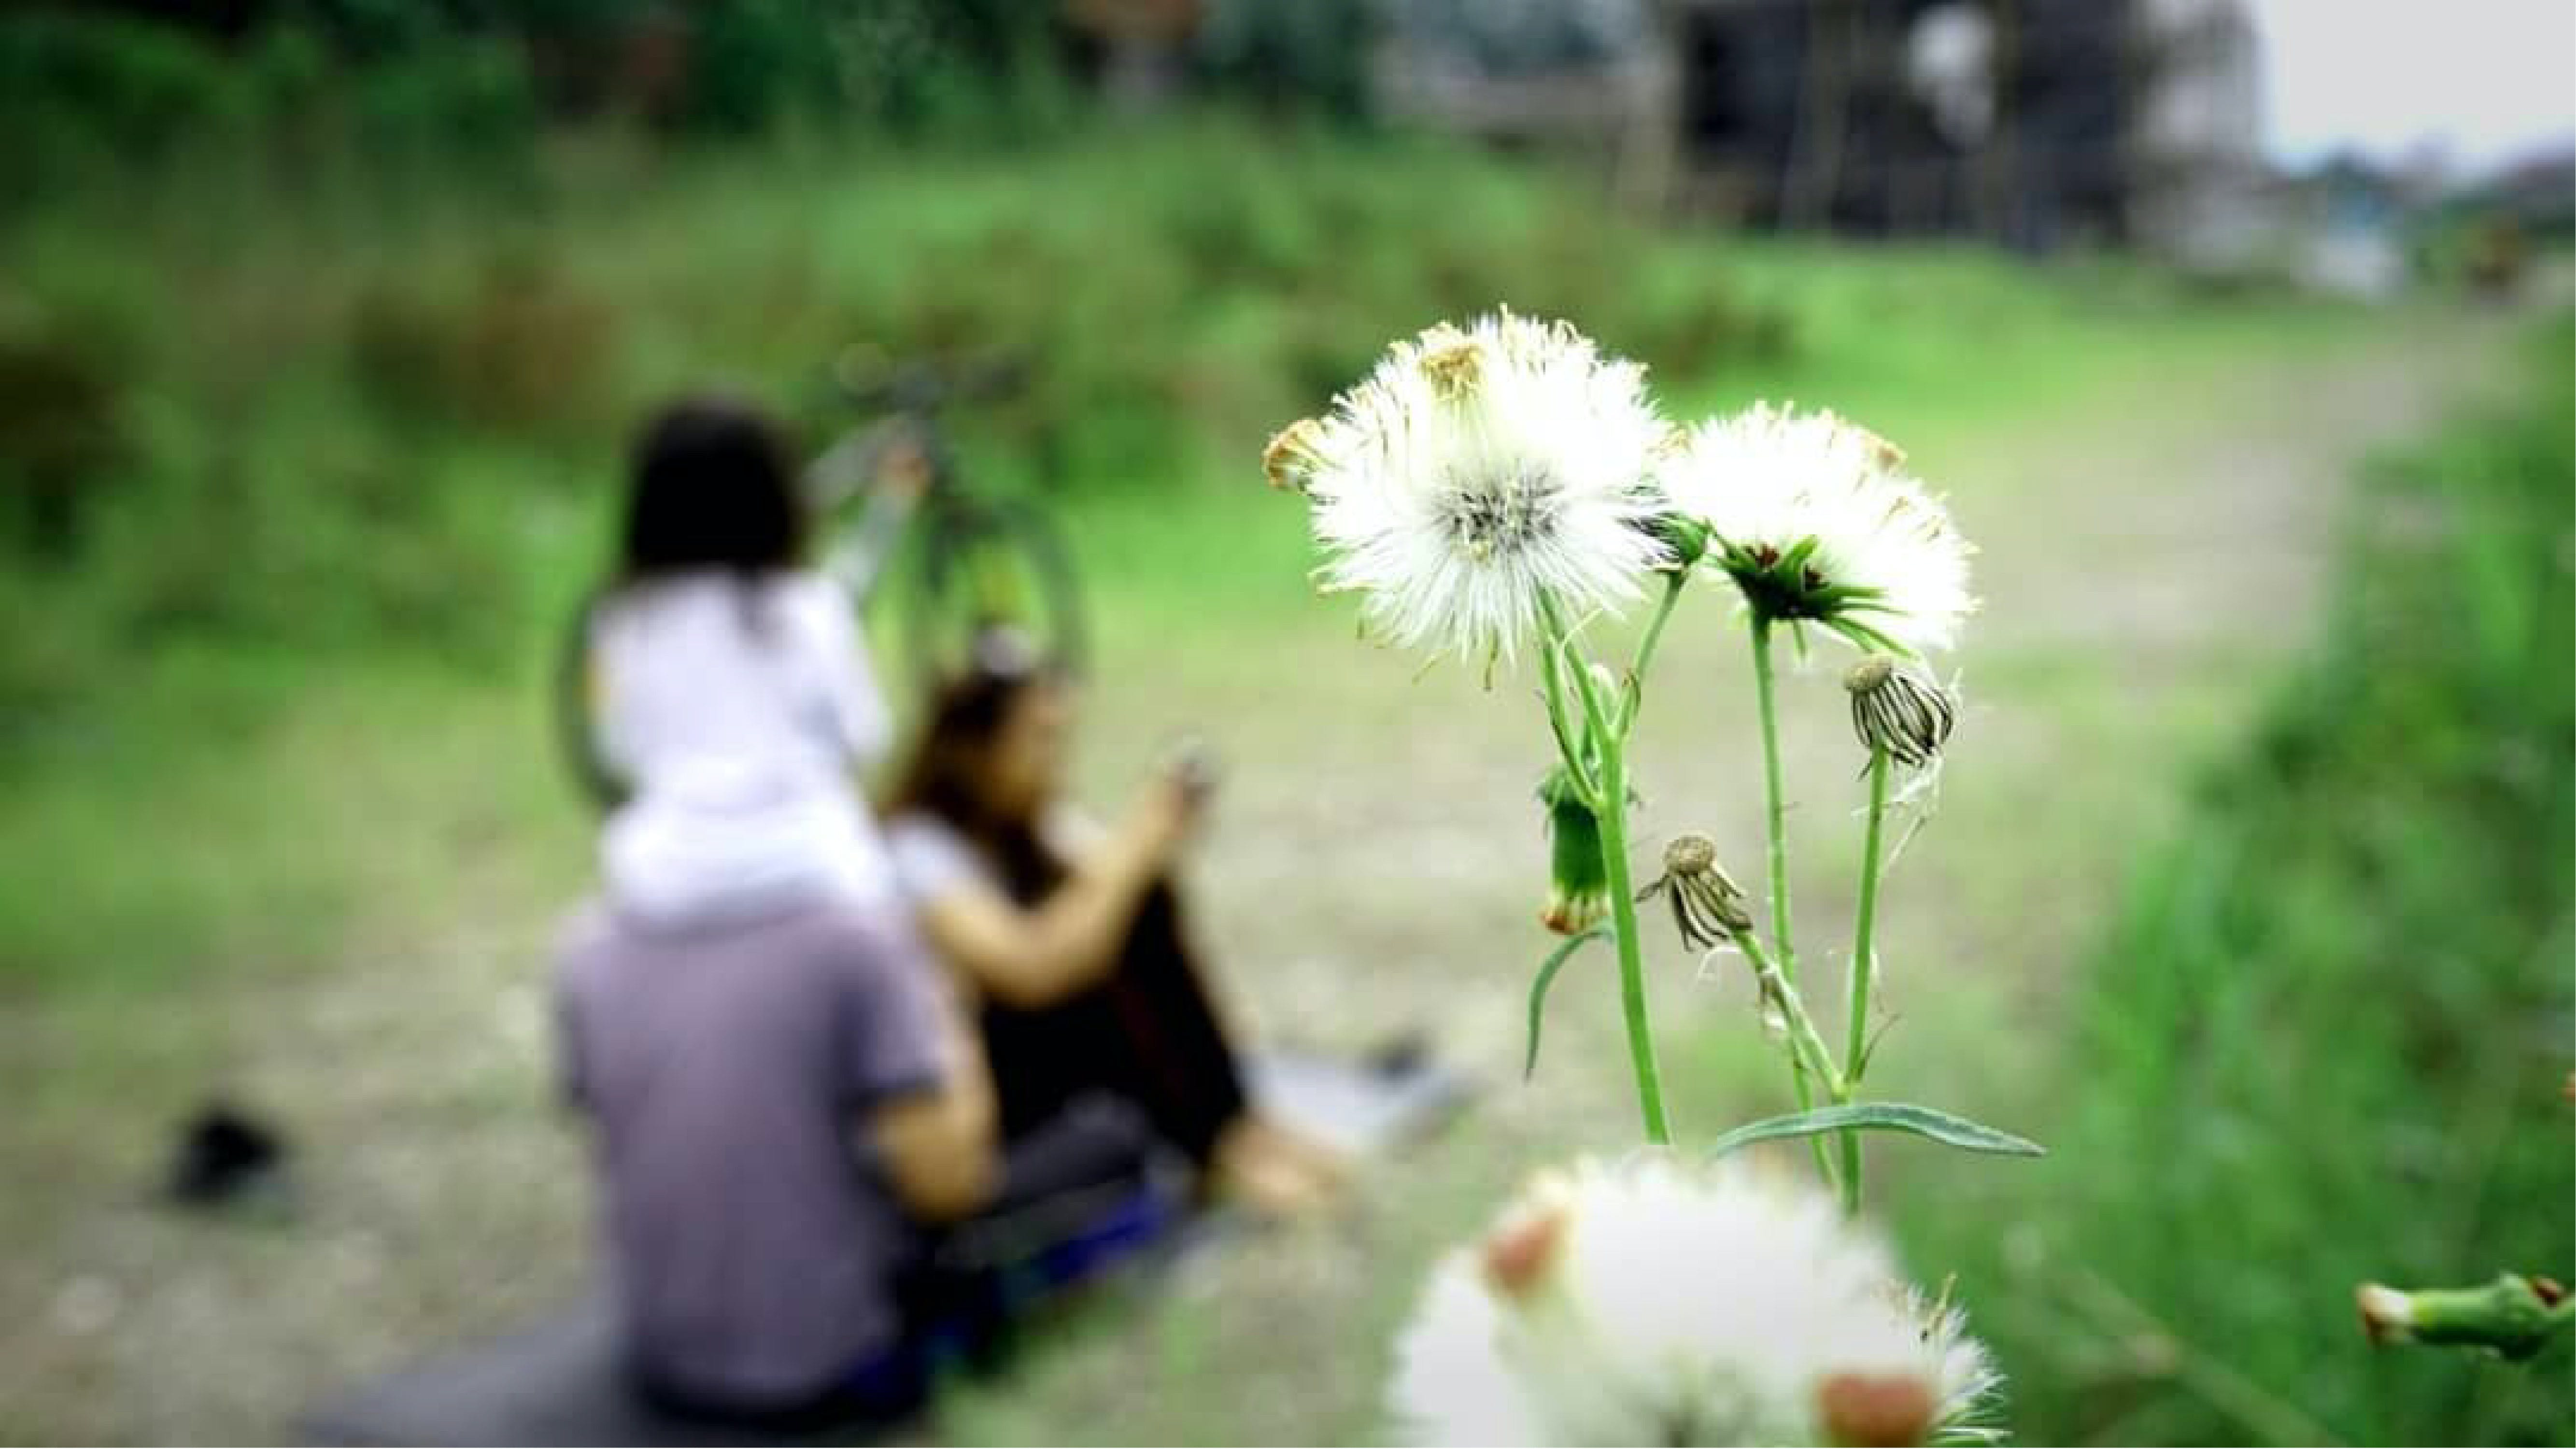 Selective Focus Photo of White Dandelion